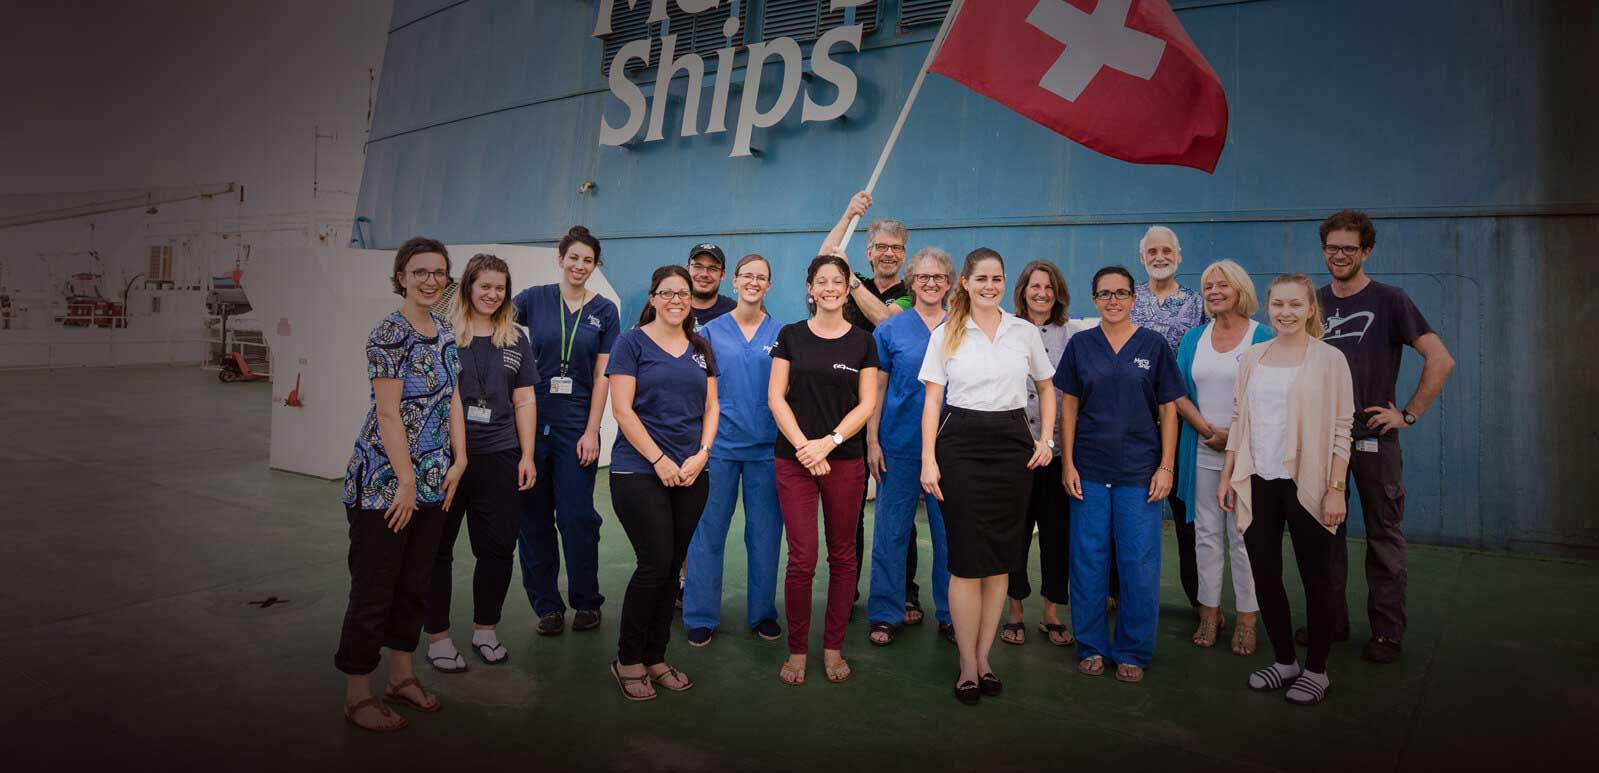 https://mercyships.ch/wp-content/uploads/2019/04/Equipage_Suisse.jpg